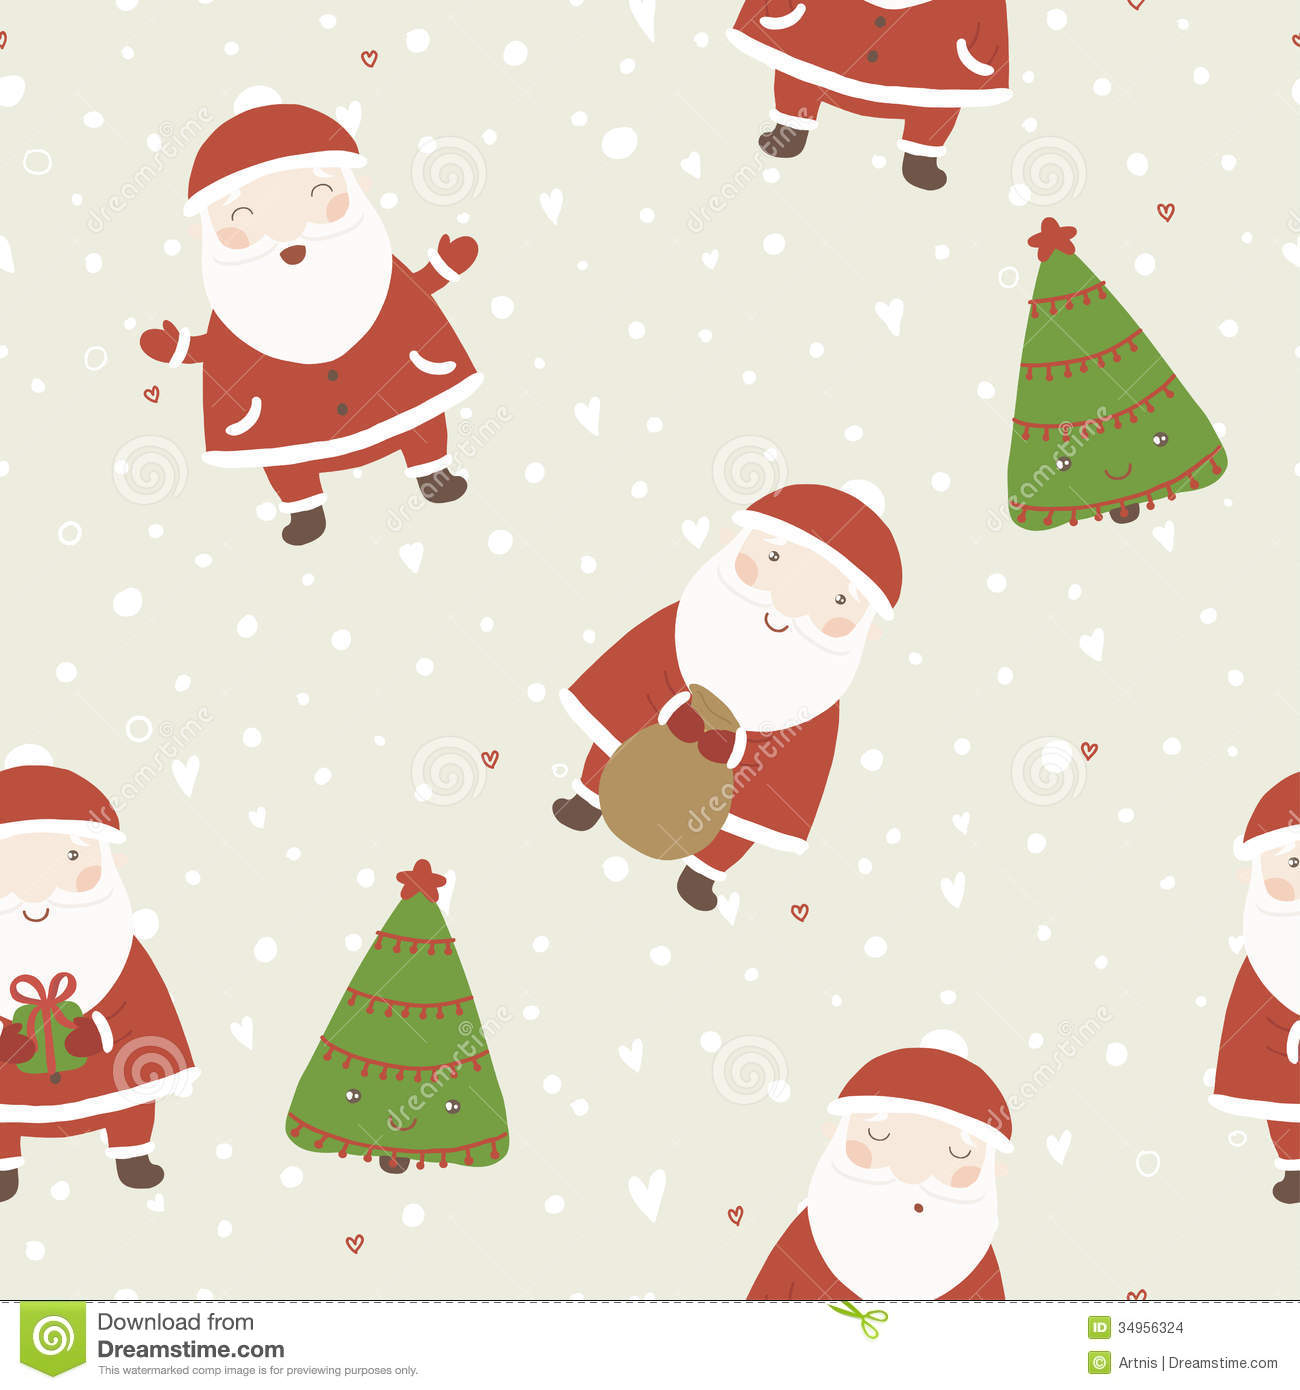 Christmas Background With Santa And Christmas Tree Stock Vector Illustration Of Santa Claus 34956324